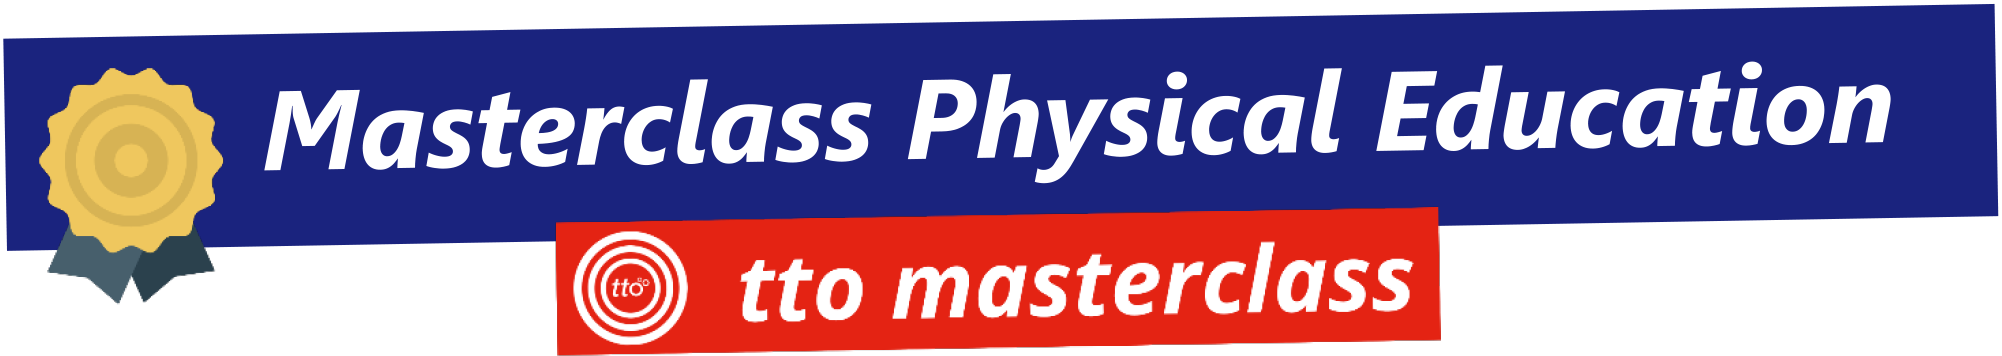 masterclasses physical education